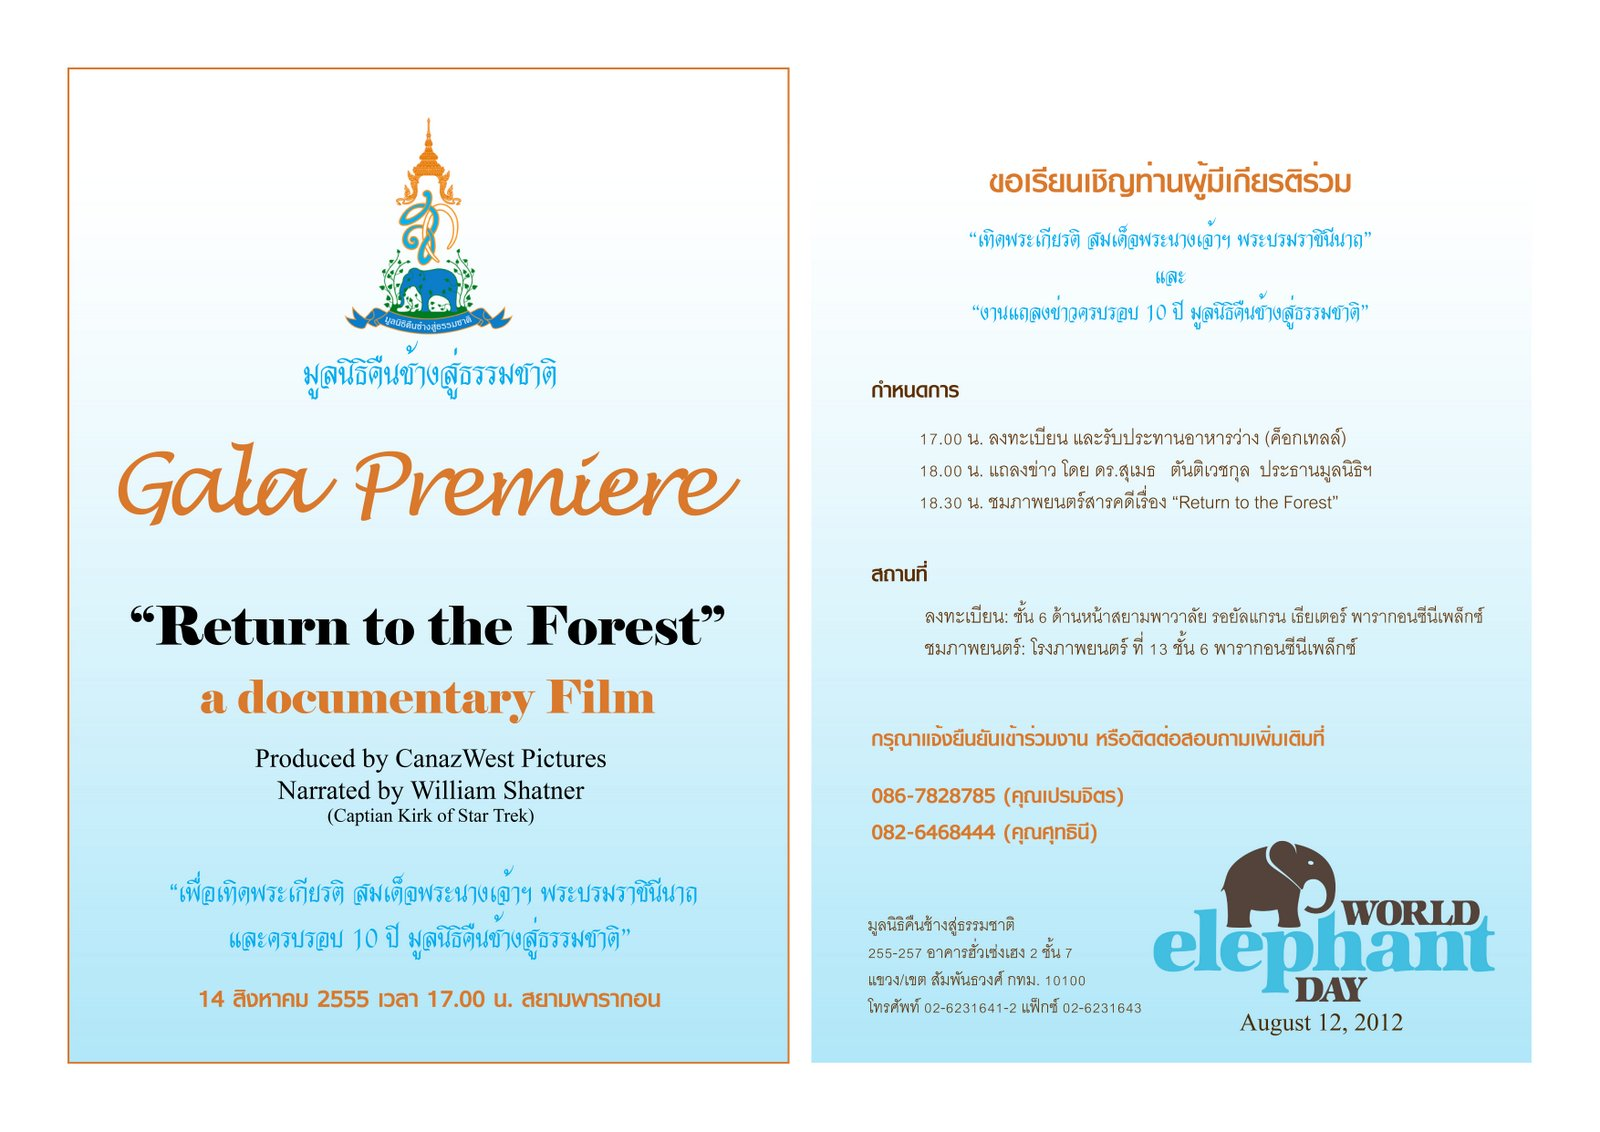 Pin ticket invitation template free on pinterest for Film premiere invitation template